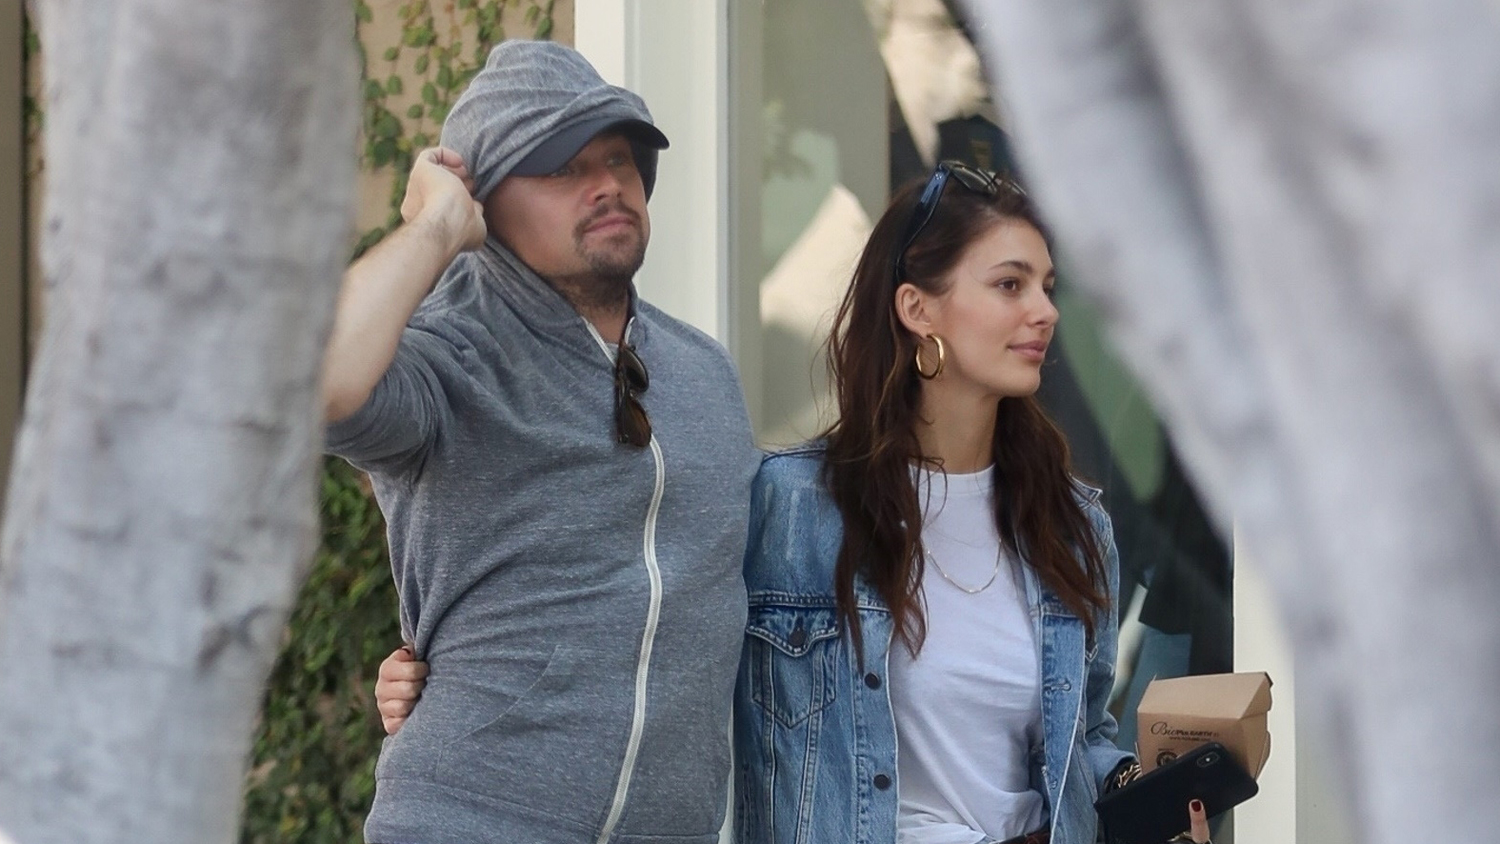 Leonardo DiCaprio & Girlfriend Camila Morrone Are Clearly Still Going Strong in These Photos! | Camila Morrone, Leonardo DiCaprio | Just Jared